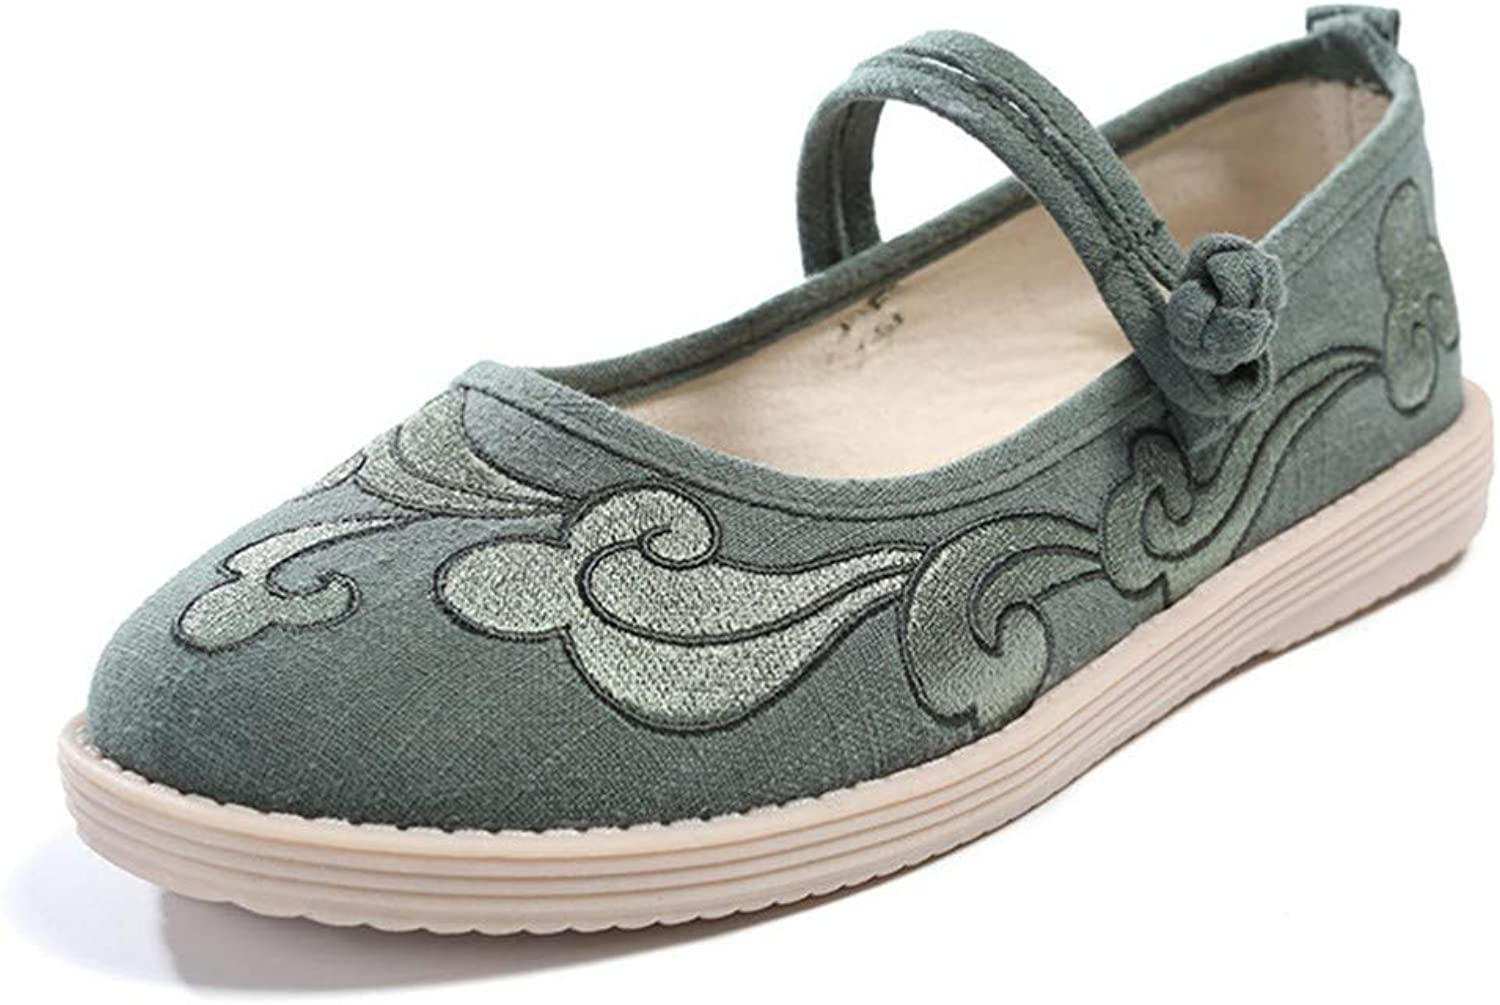 Cloth shoes, Ribbed Sole Embroidered shoes, Dancing shoes, Women's shoes-YU&Xin